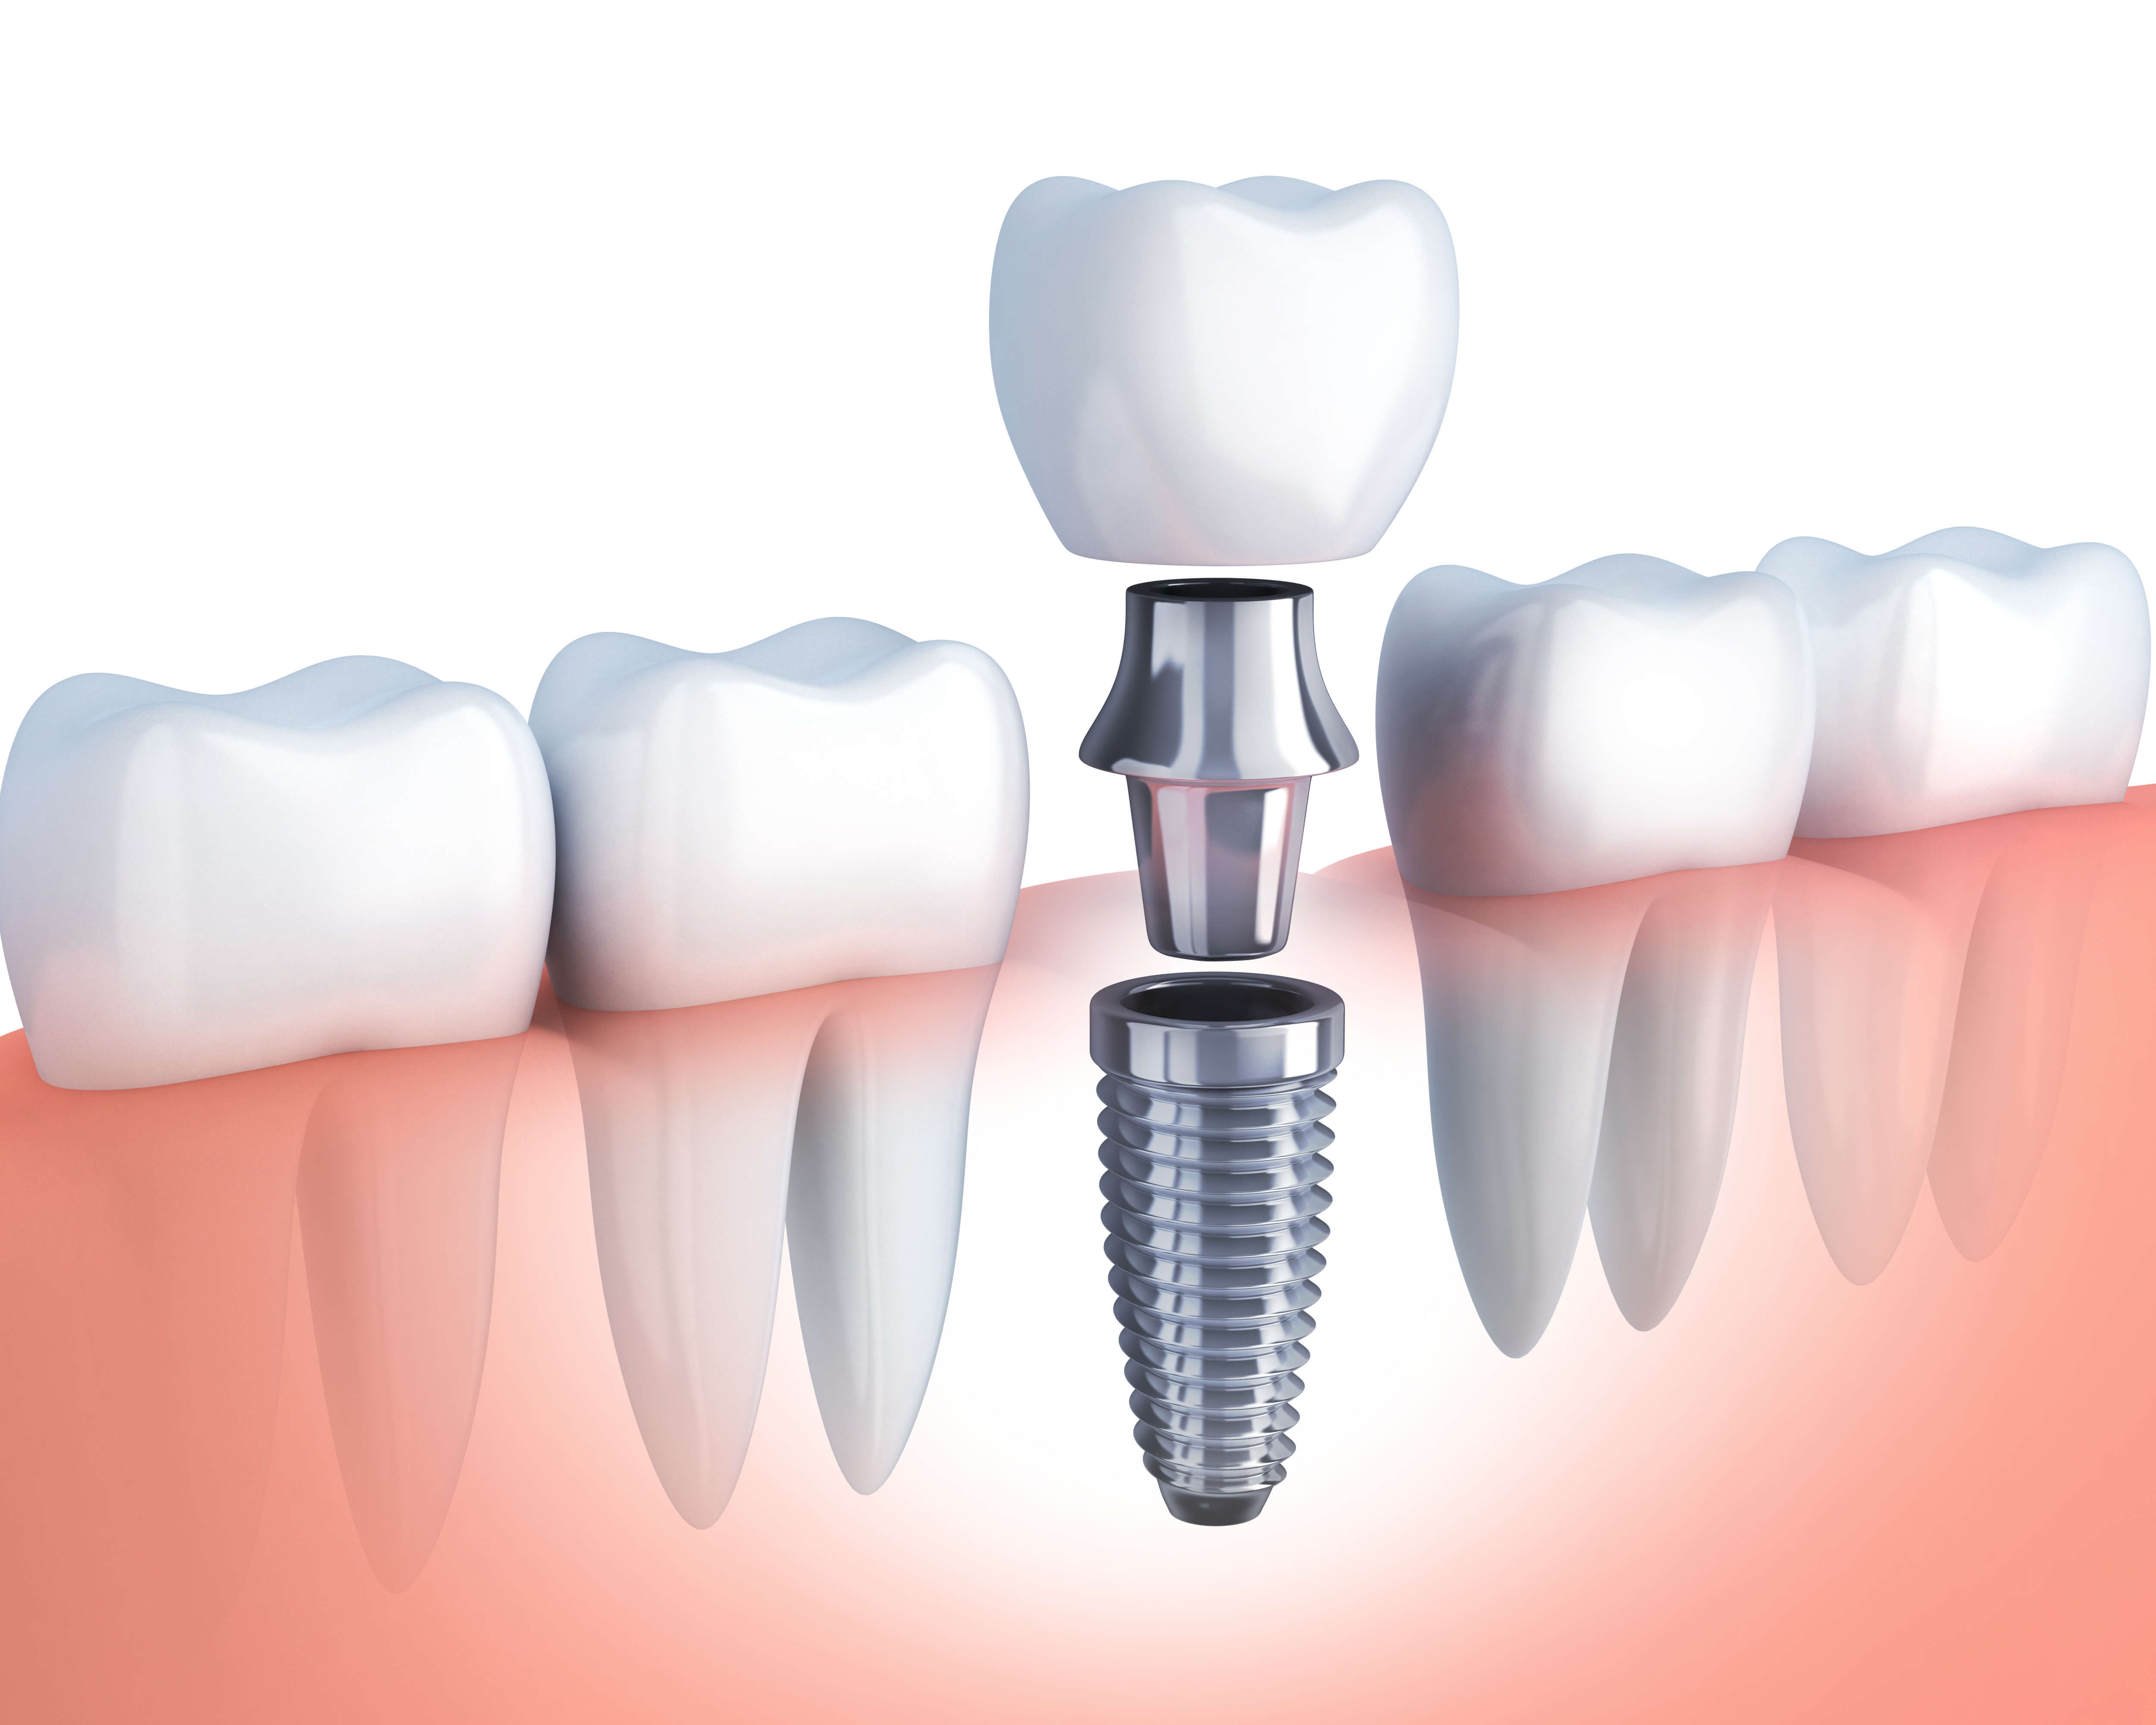 What to Expect During the Dental Implant Process